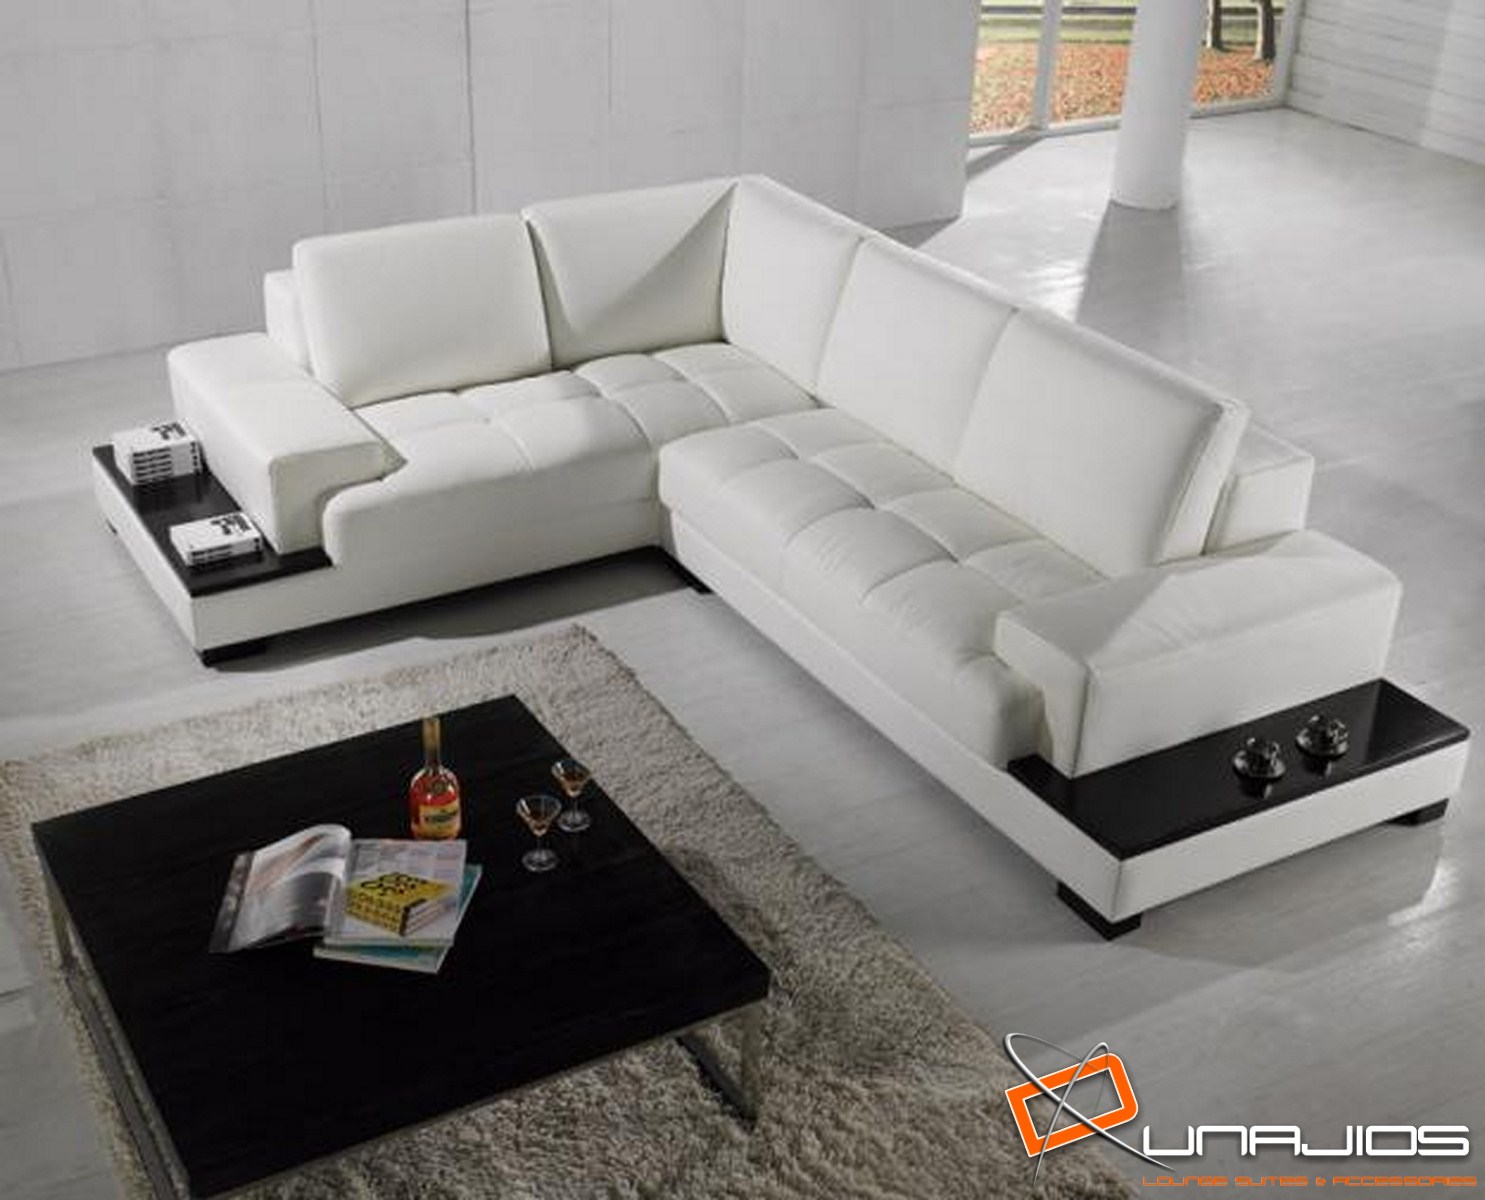 simple modern furniture za johannesburg view all listingsvisit the